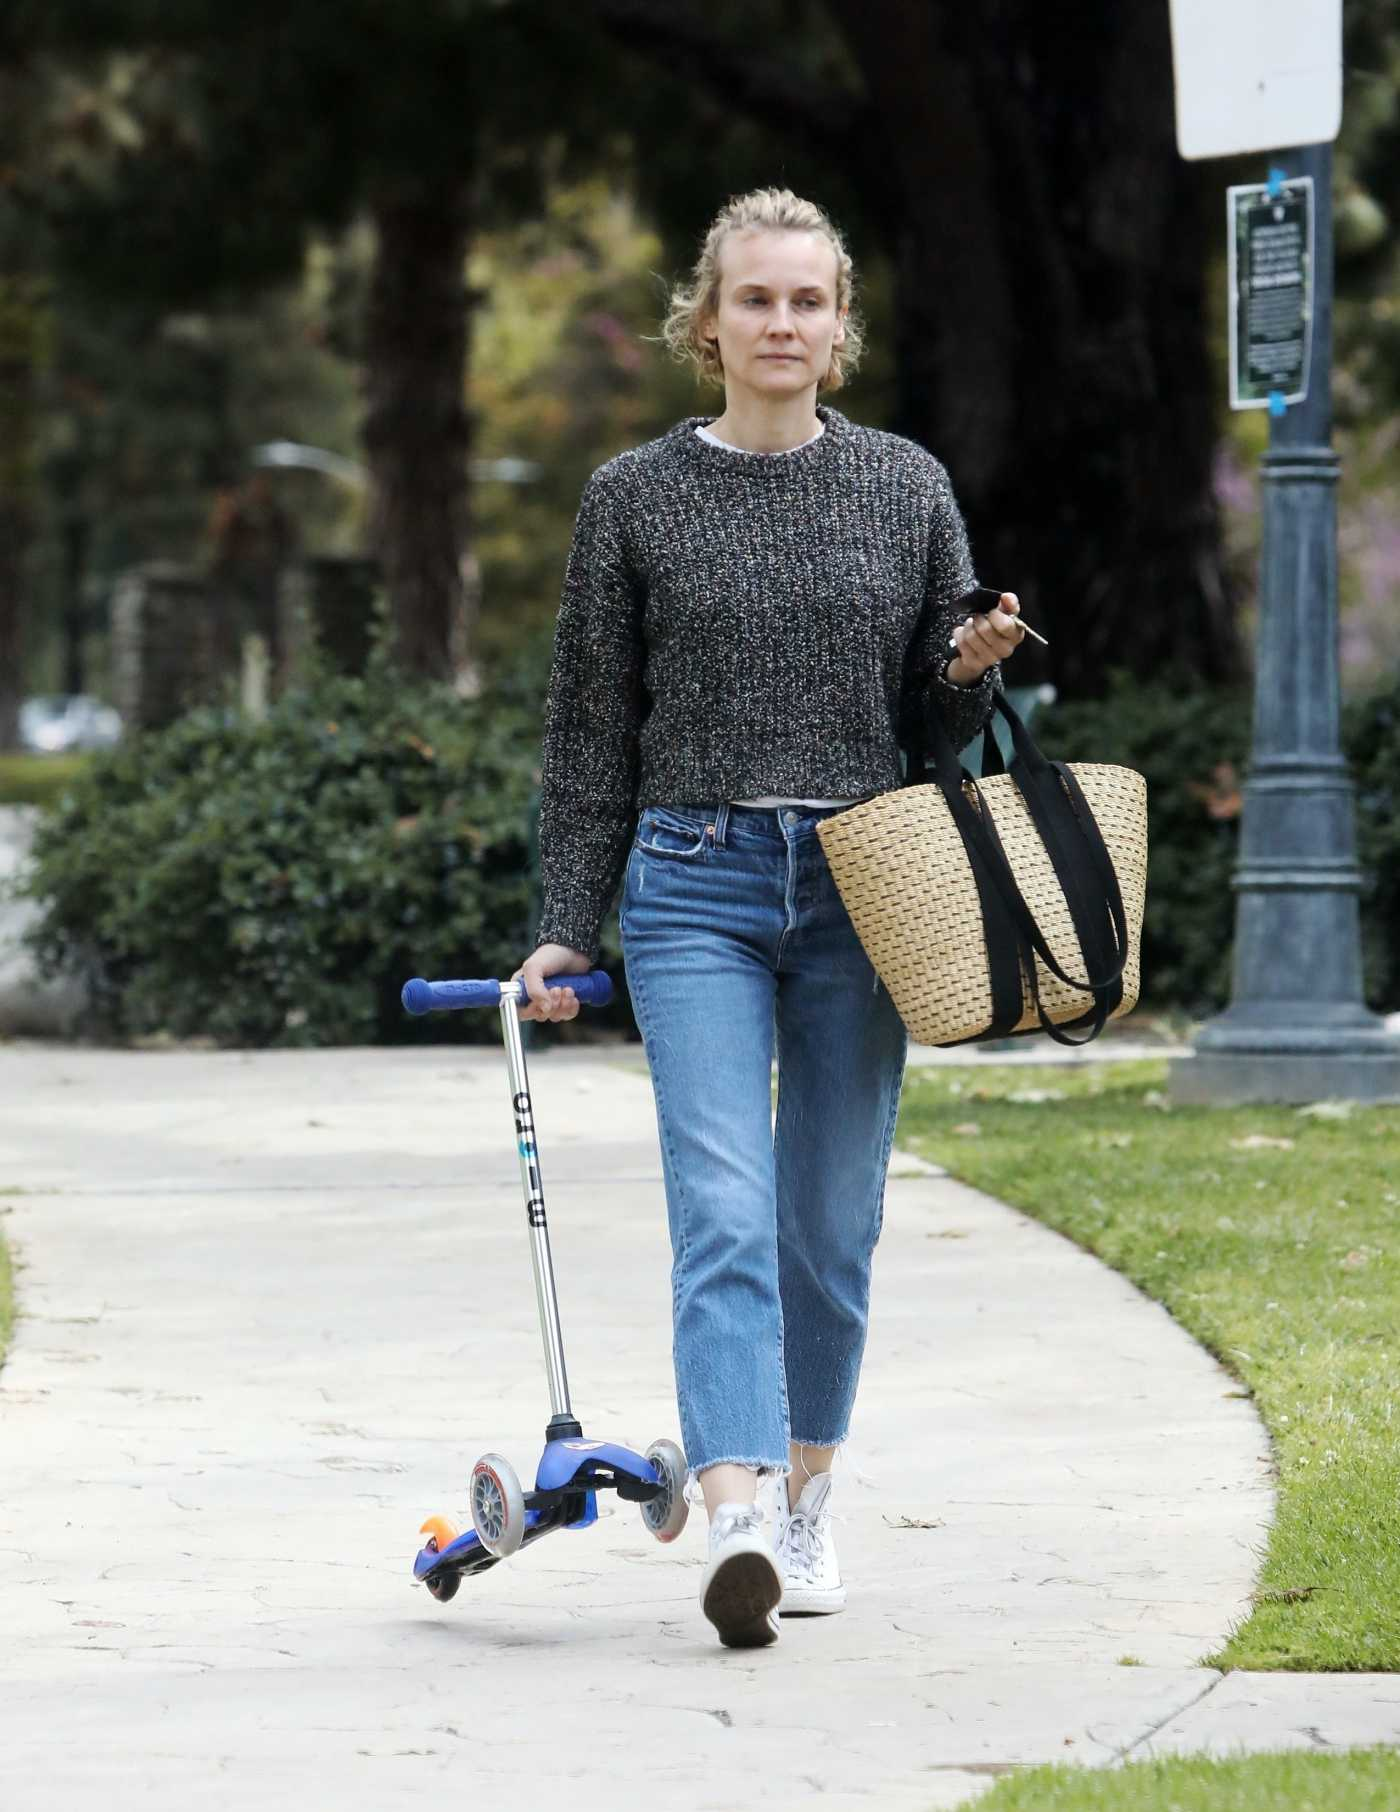 Diane Kruger in a Blue Jeans Was Spotted in a Park in Los Angeles 04/08/2020